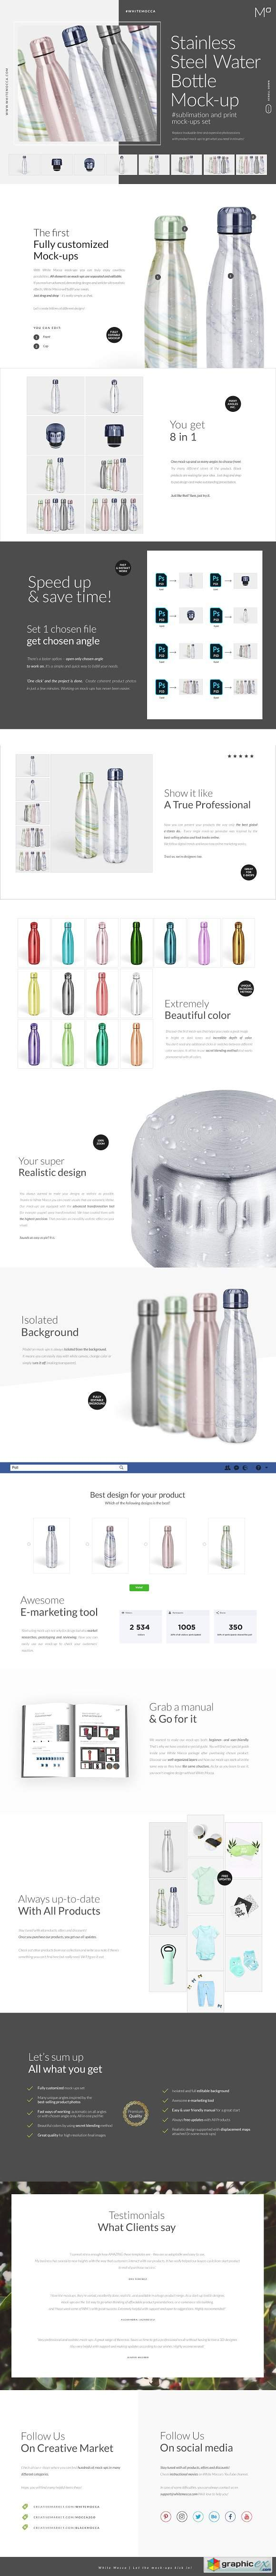 Stainless Steel Water Bottle Mock-up